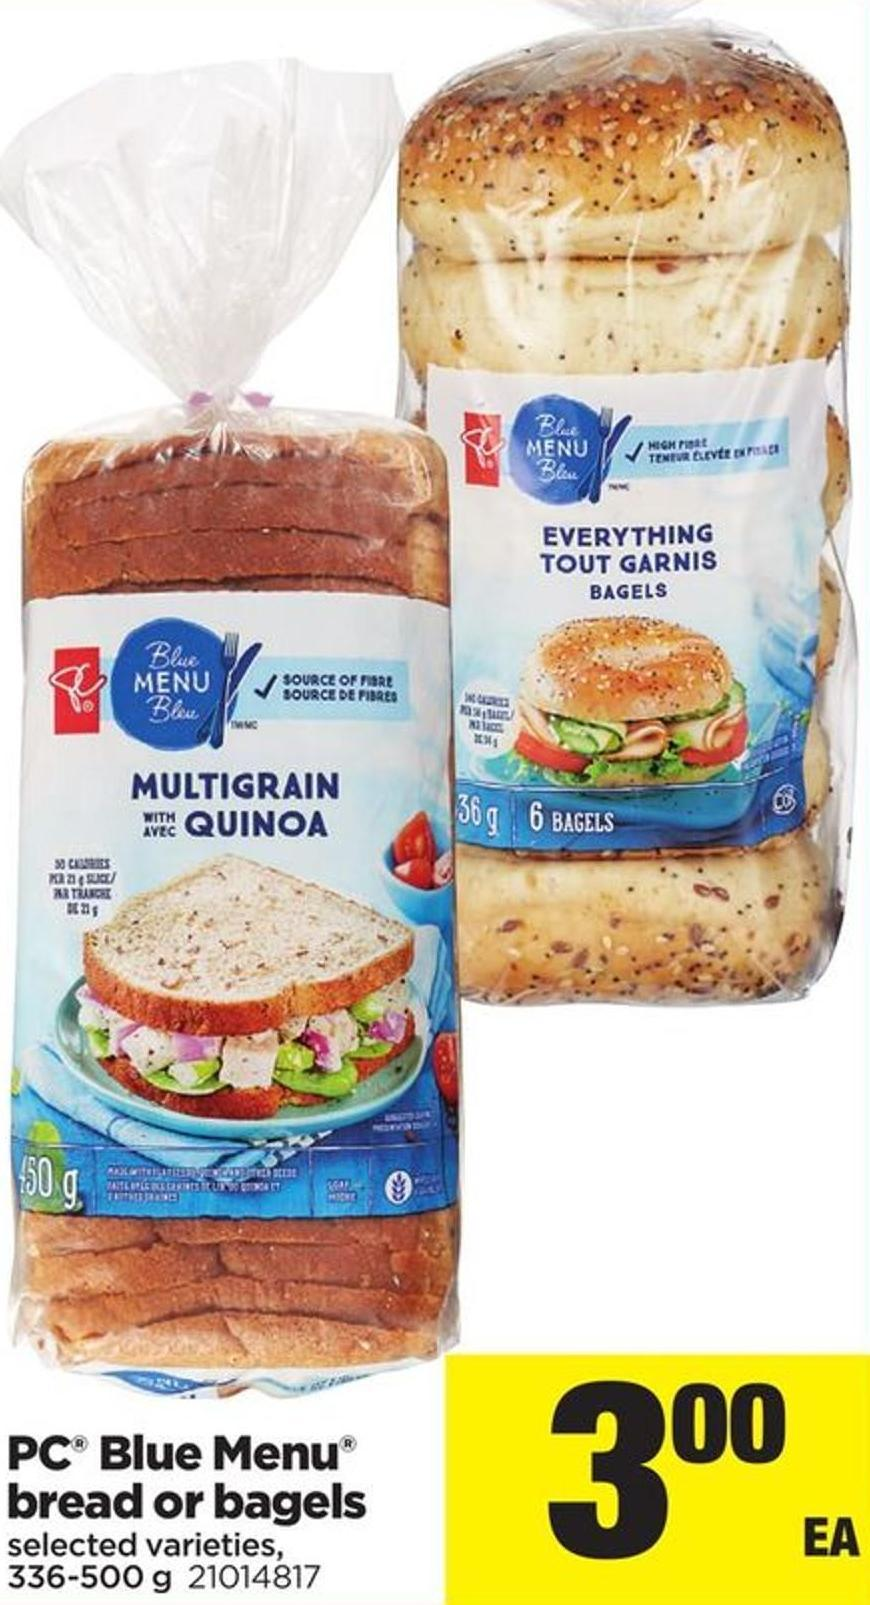 PC Blue Menu Bread Or Bagels - 336-500 g